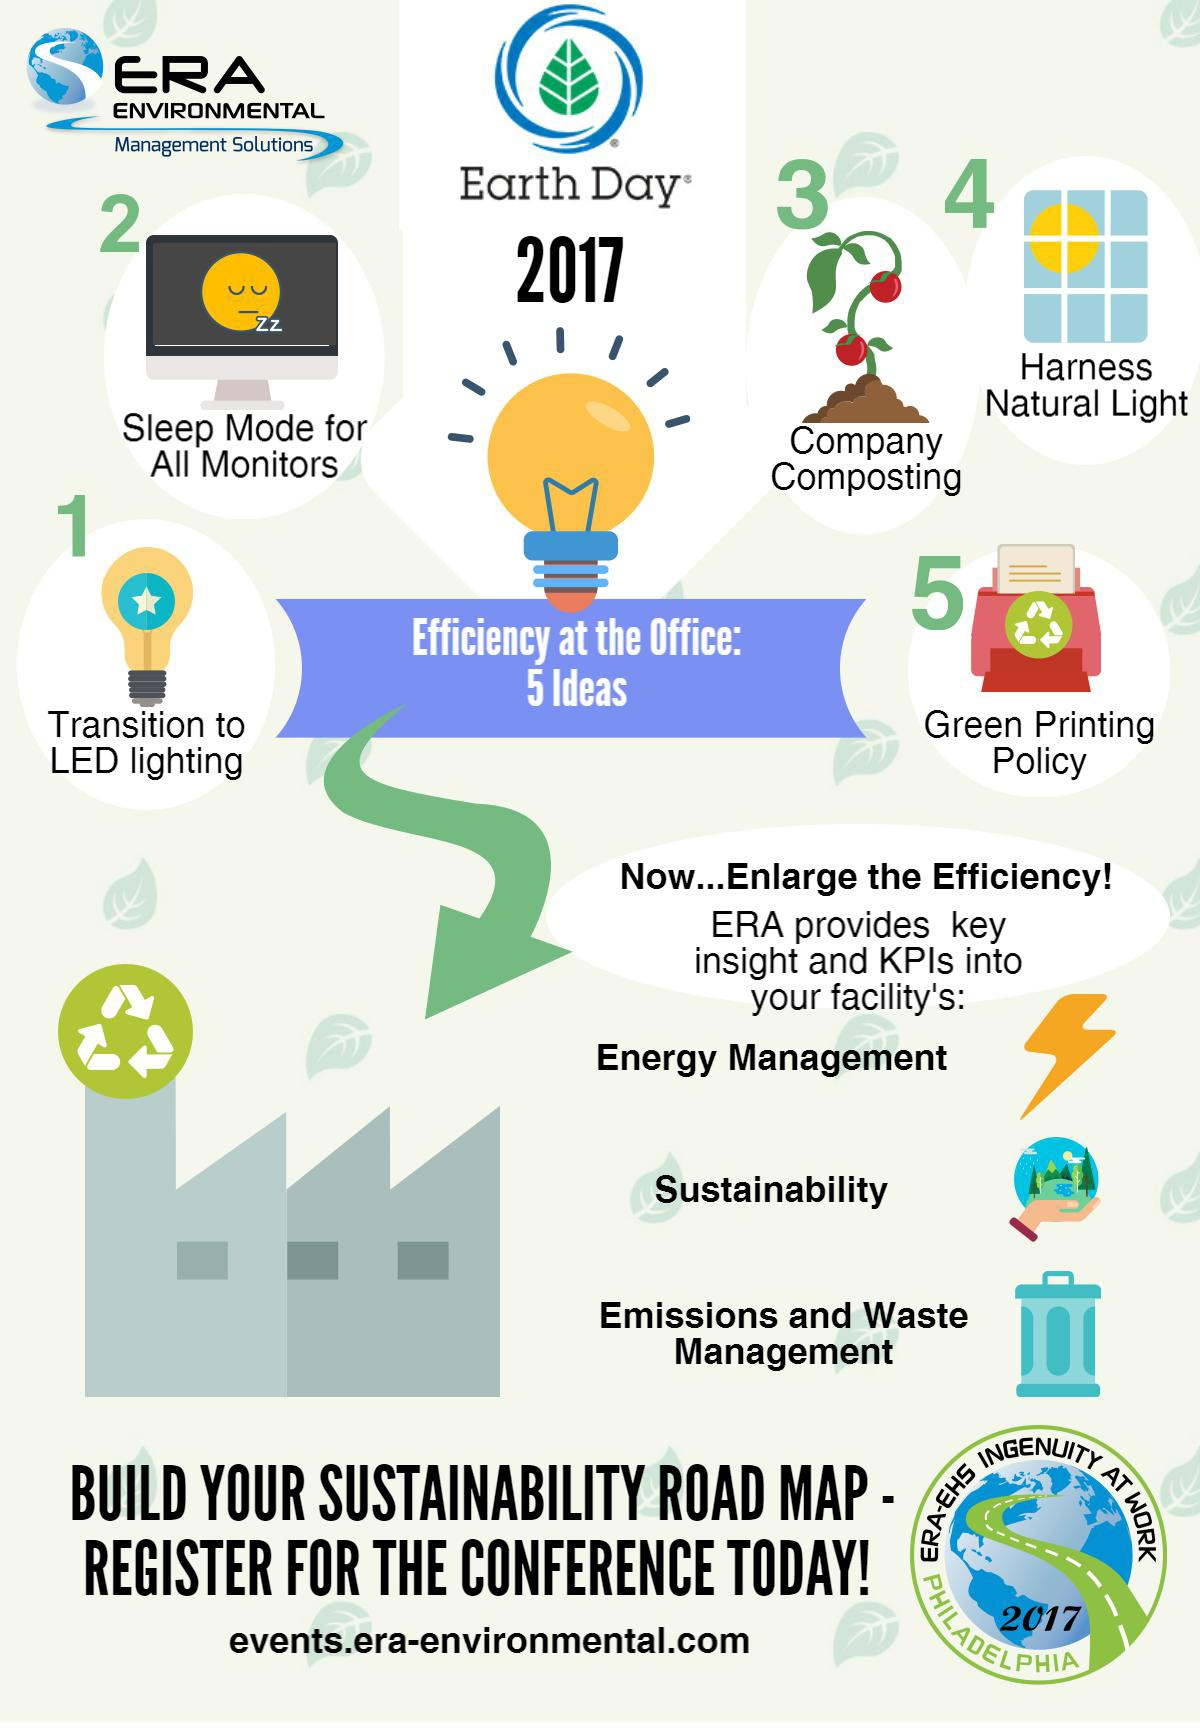 ERA-infographic-earth-day-2017.jpg